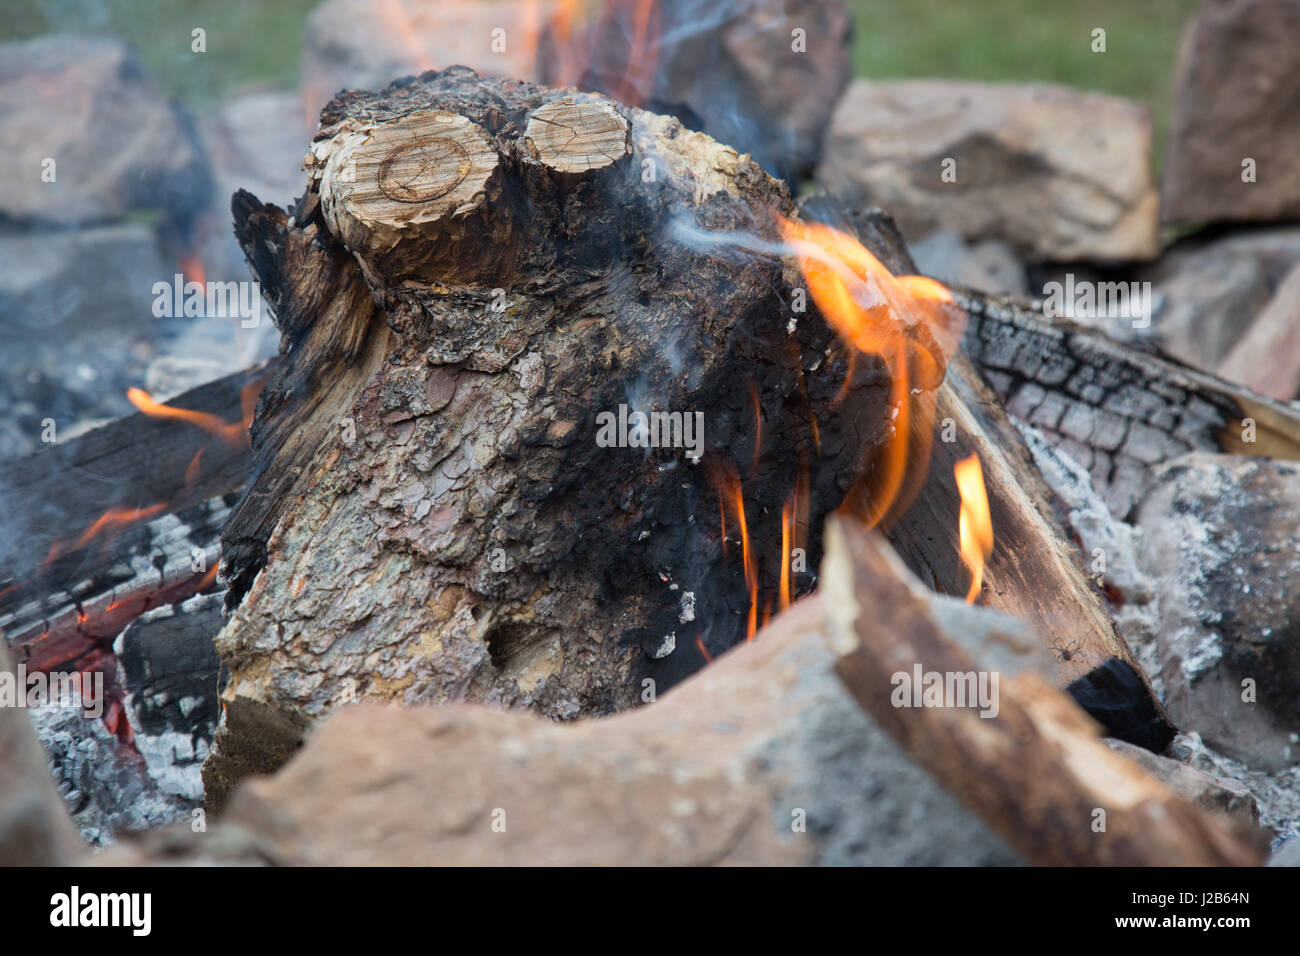 Warm up by the fire - Stock Image